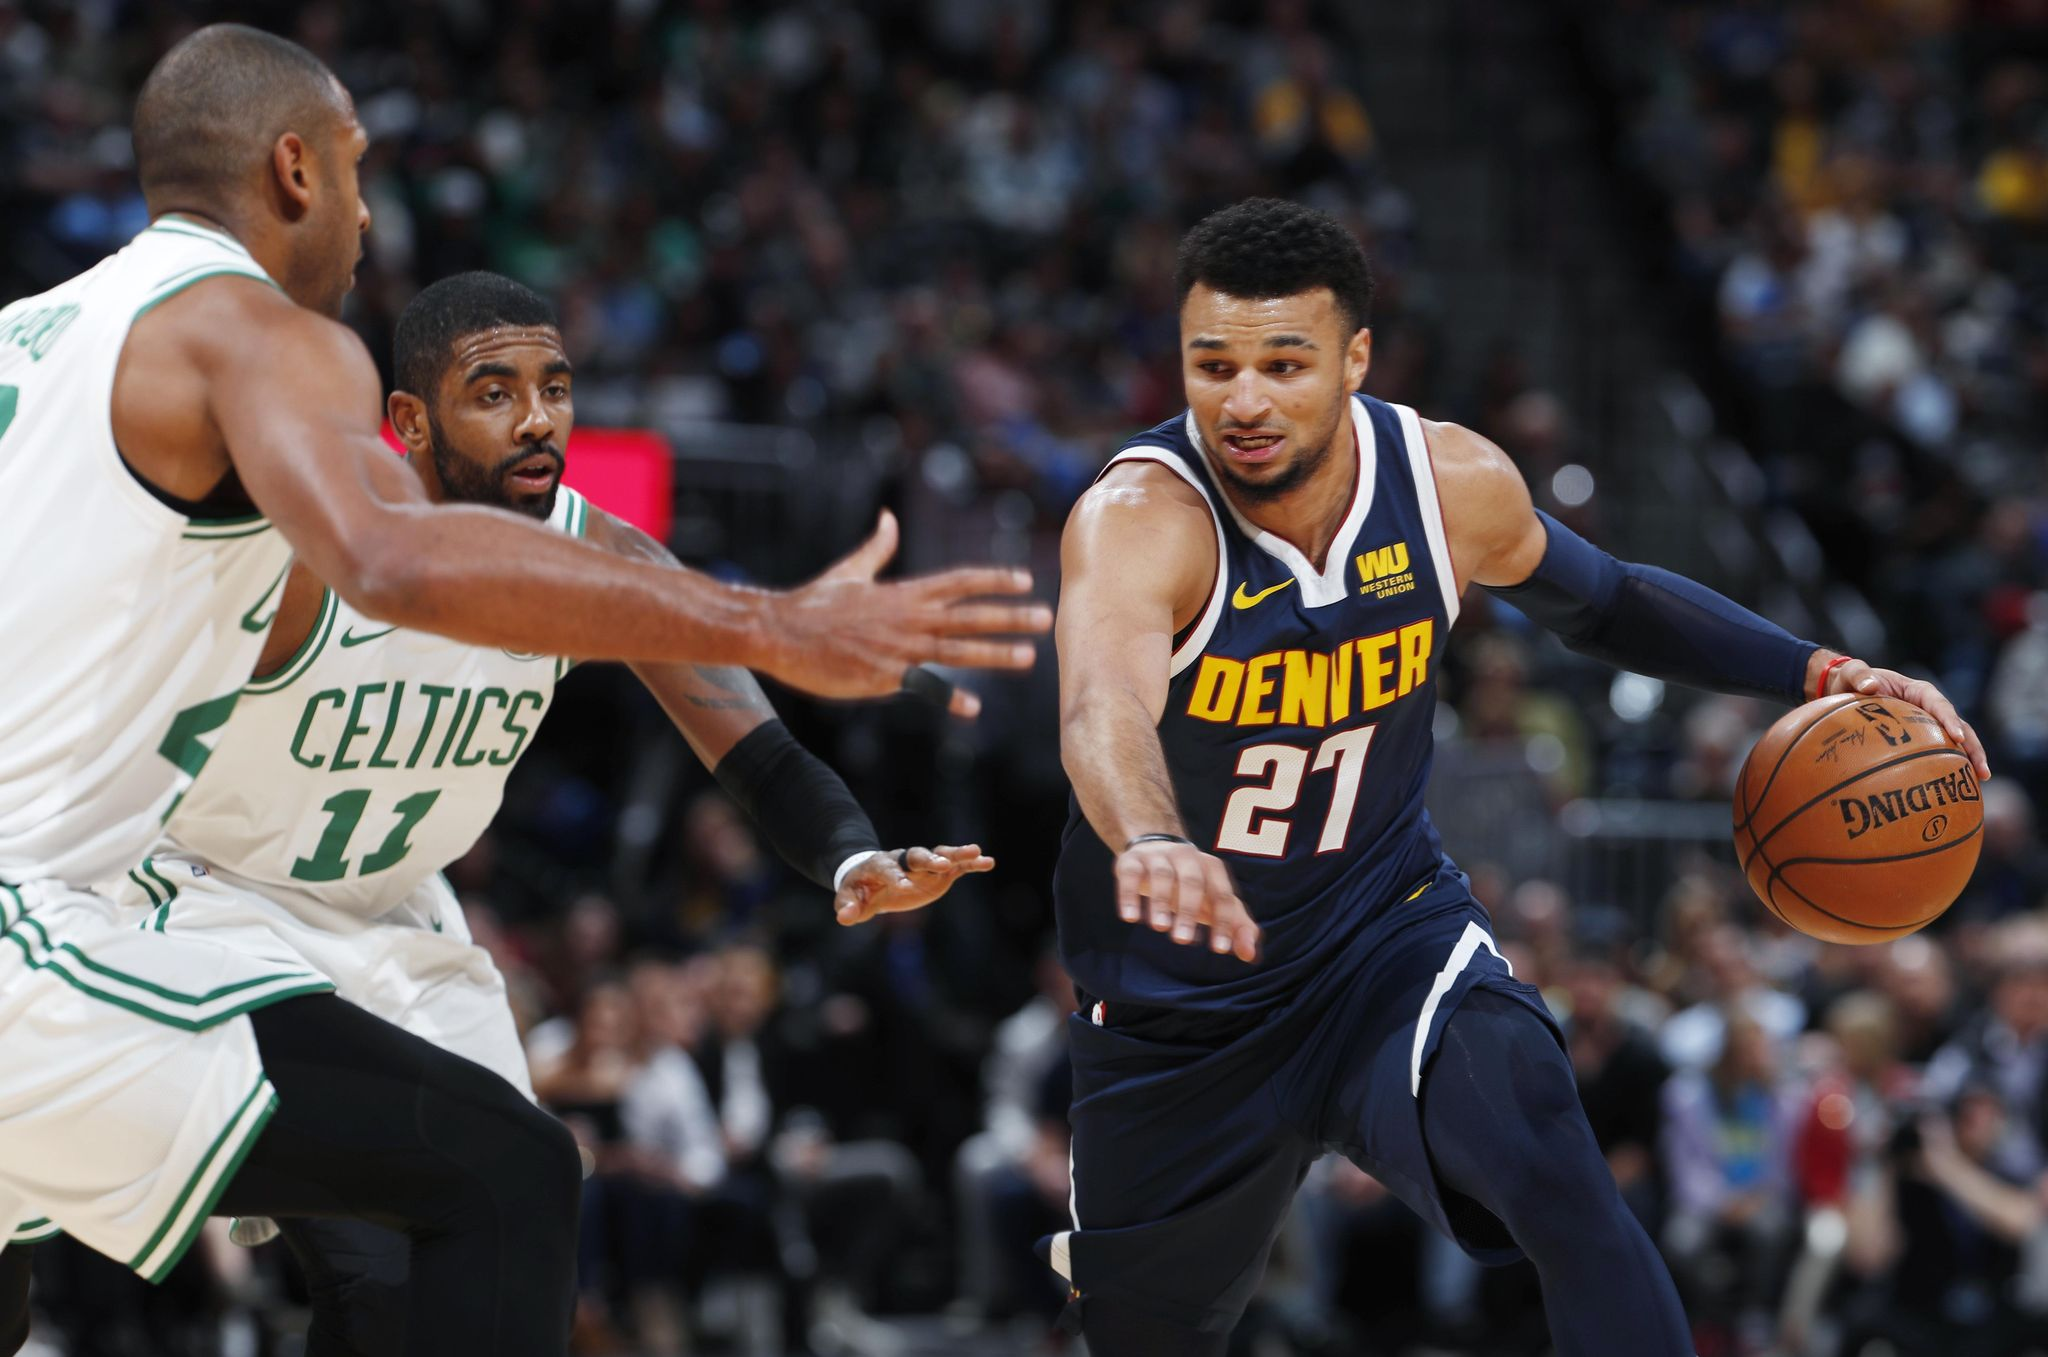 Murray scores 48 as Nuggets beat Celtics 115-107